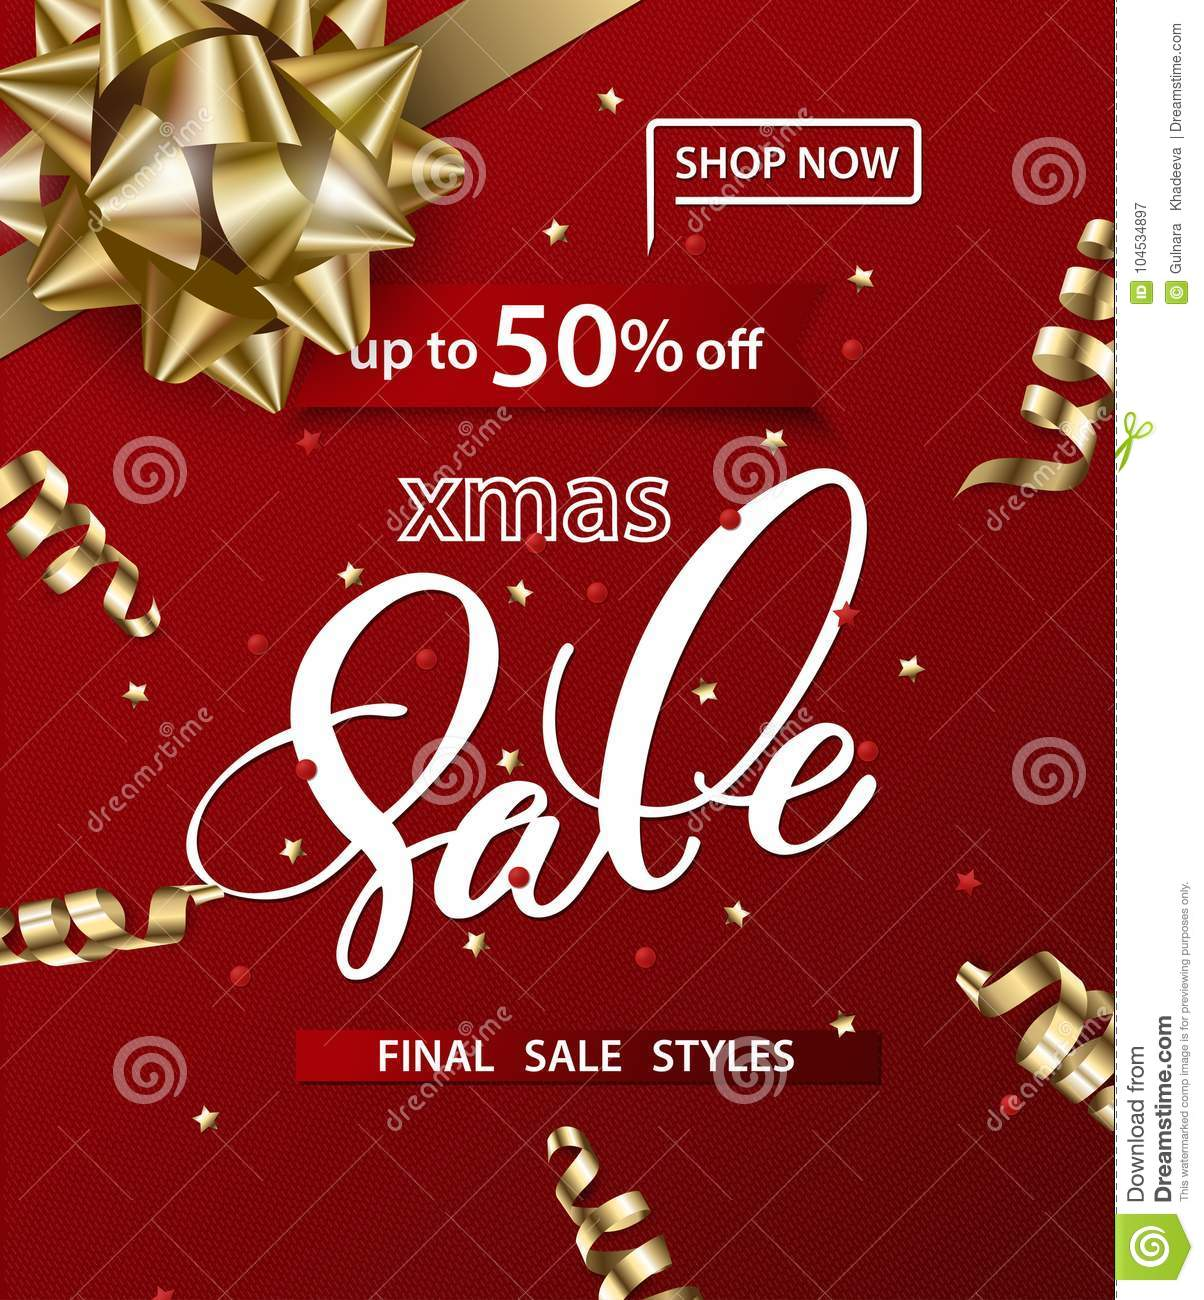 download merry christmas and happy new year pattern of sales banners with christmas bow with decorations - Christmas Eve Sales